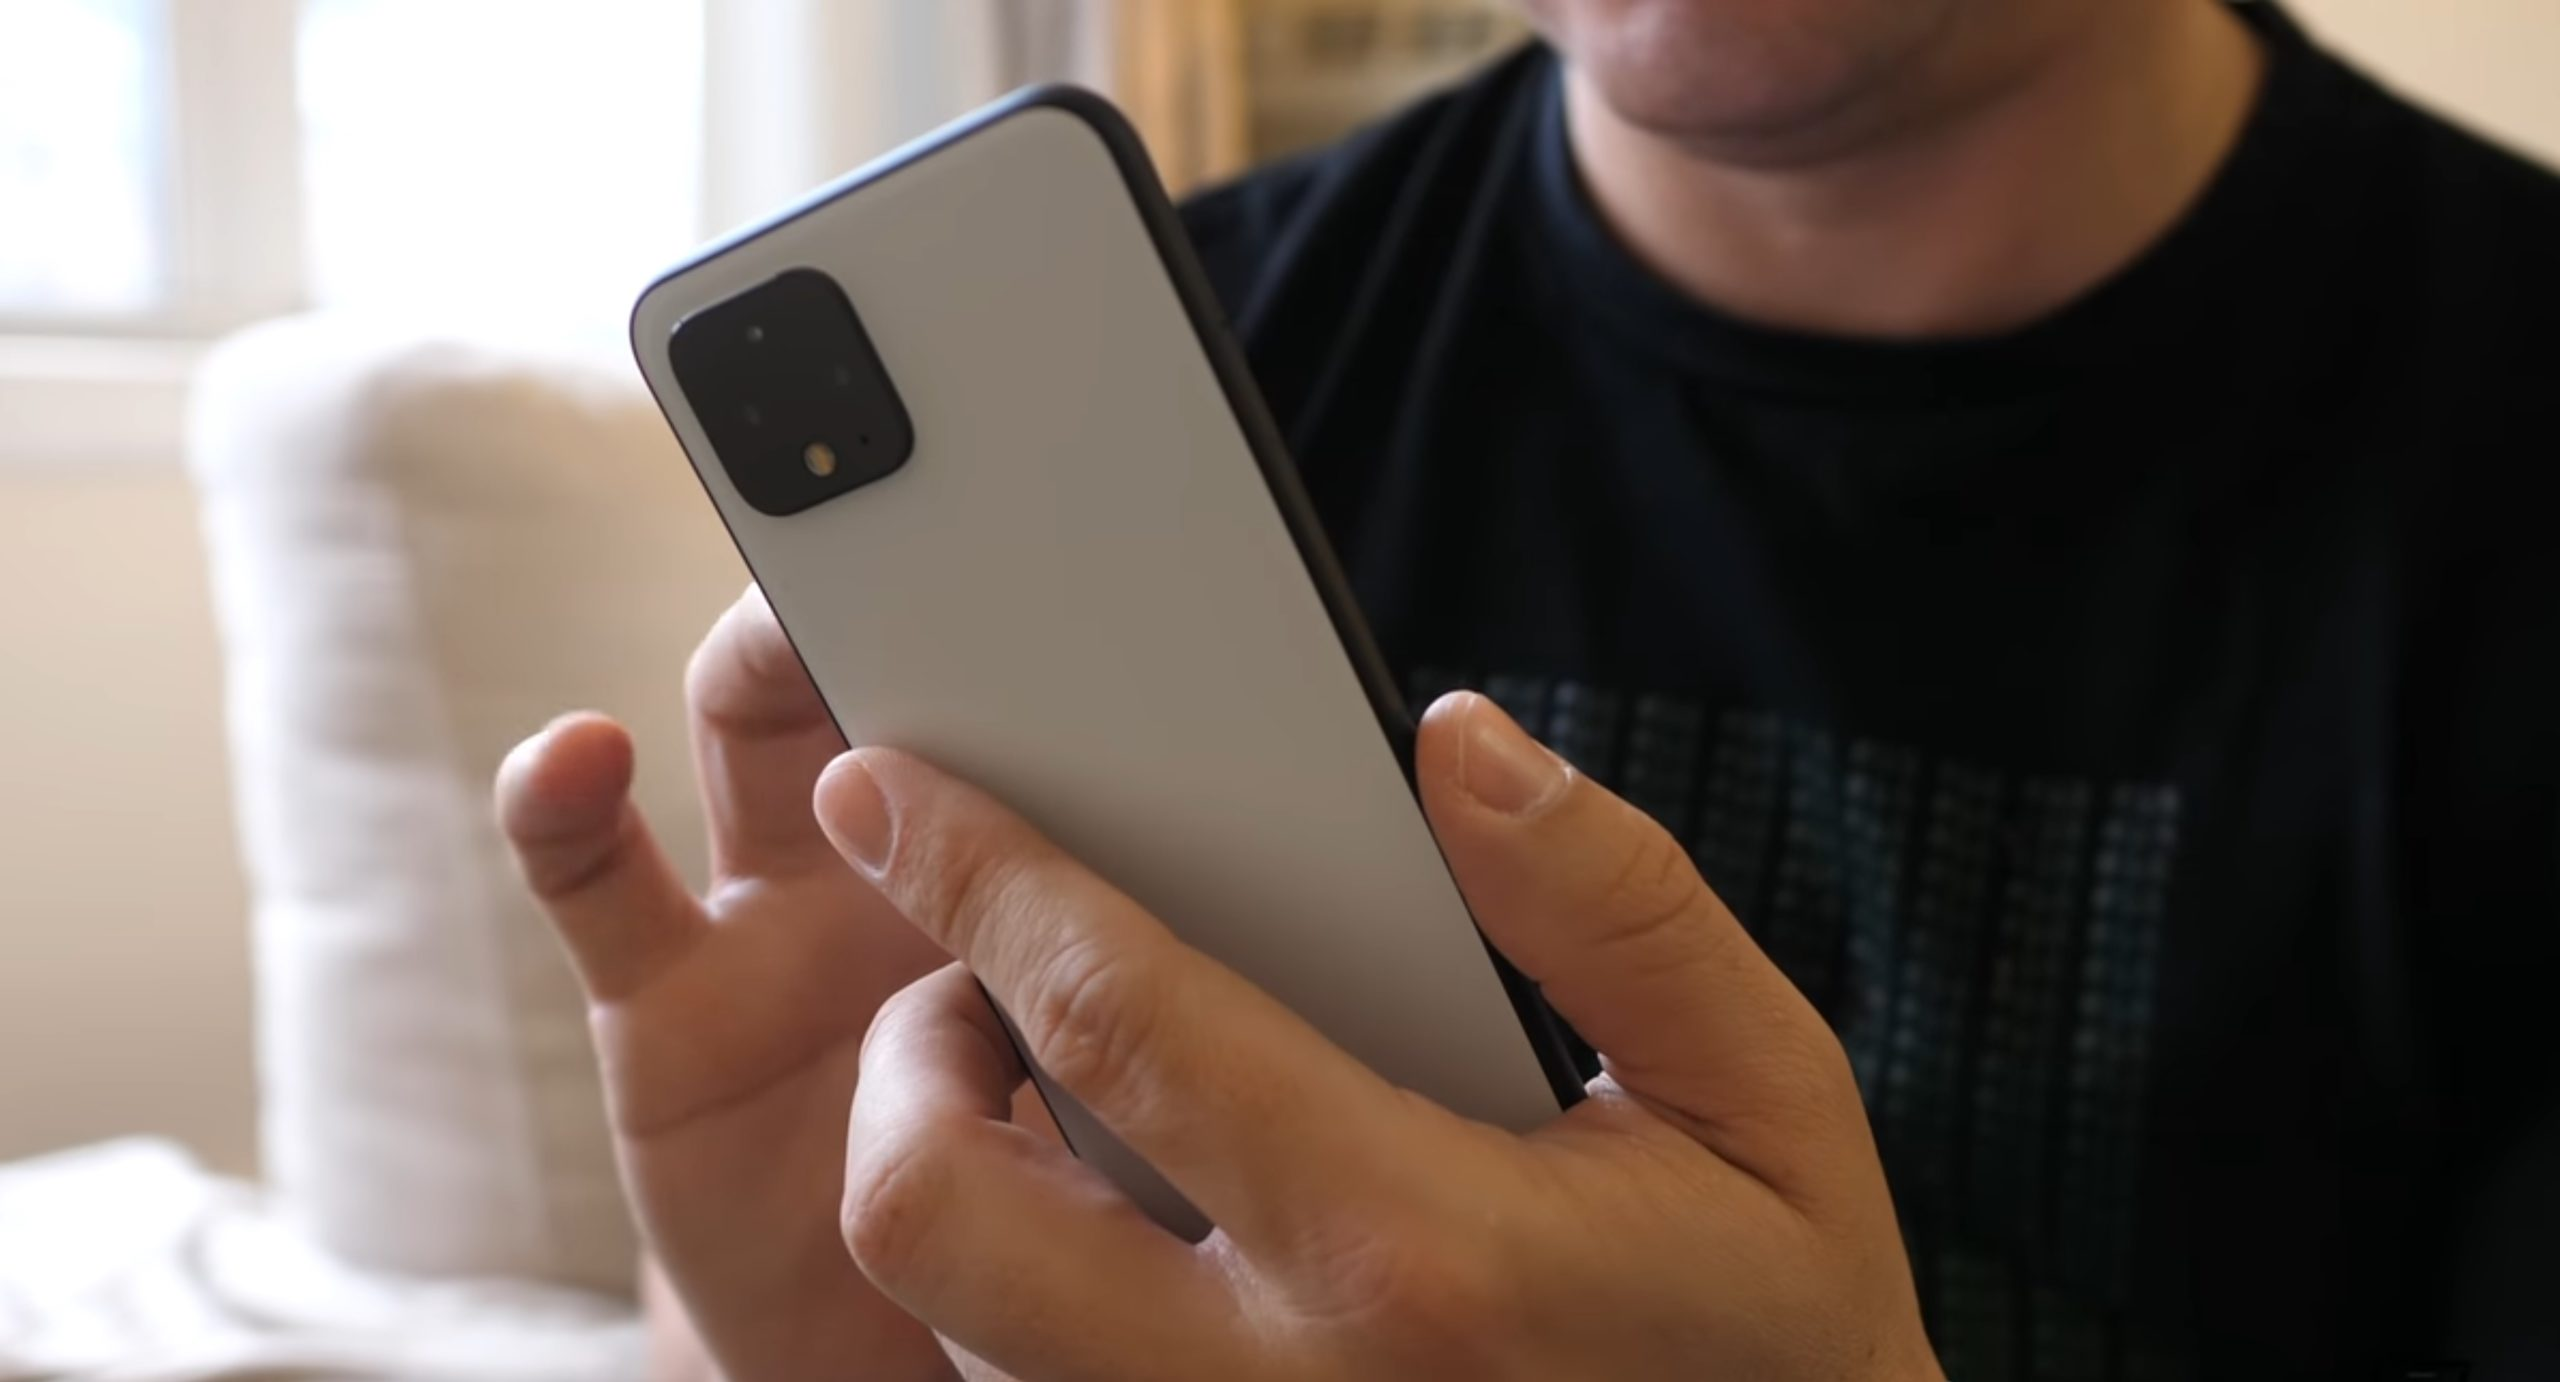 The Google Pixel 4, Apple Watch series 6, iPhone 12 leather cases and more are also on sale